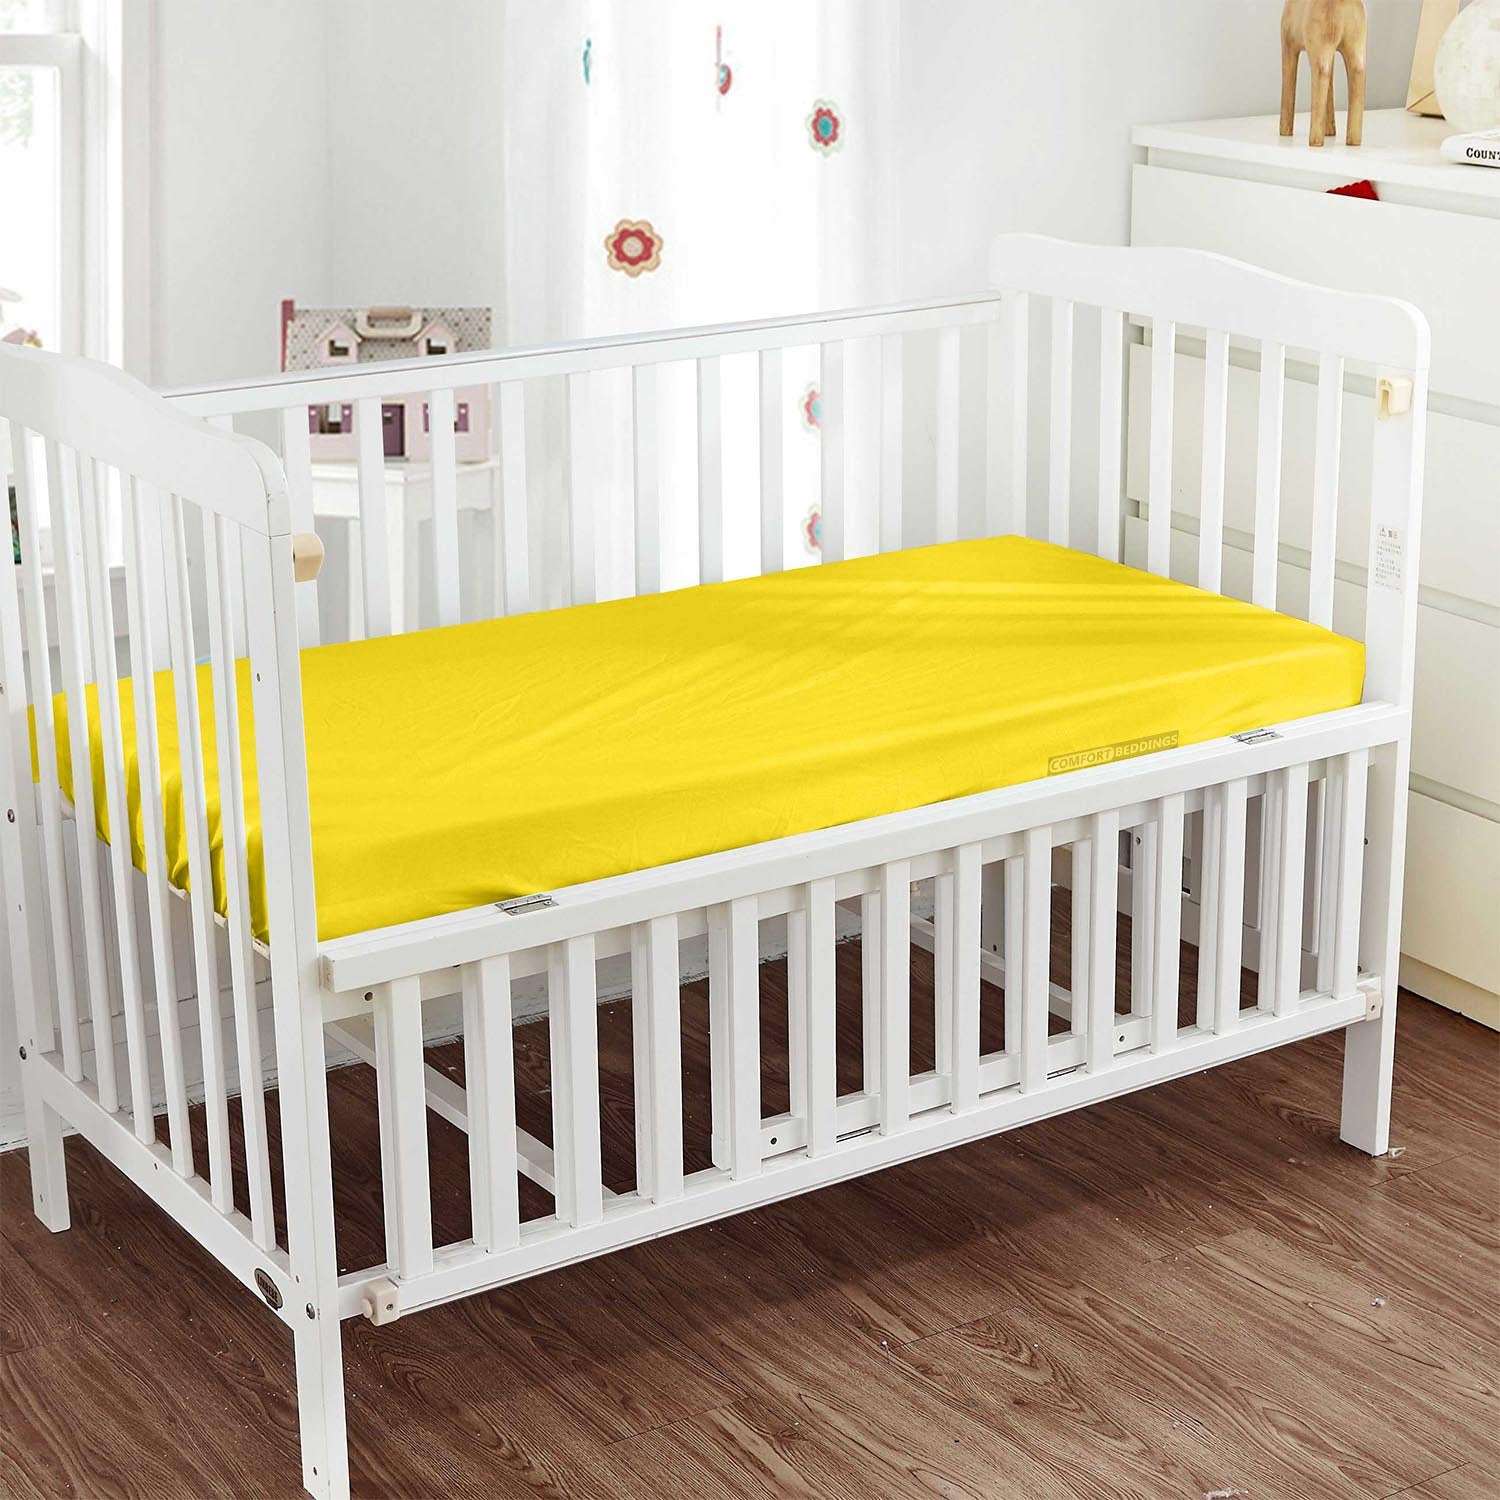 600TC Egyptian Cotton Yellow Crib Fitted Sheets